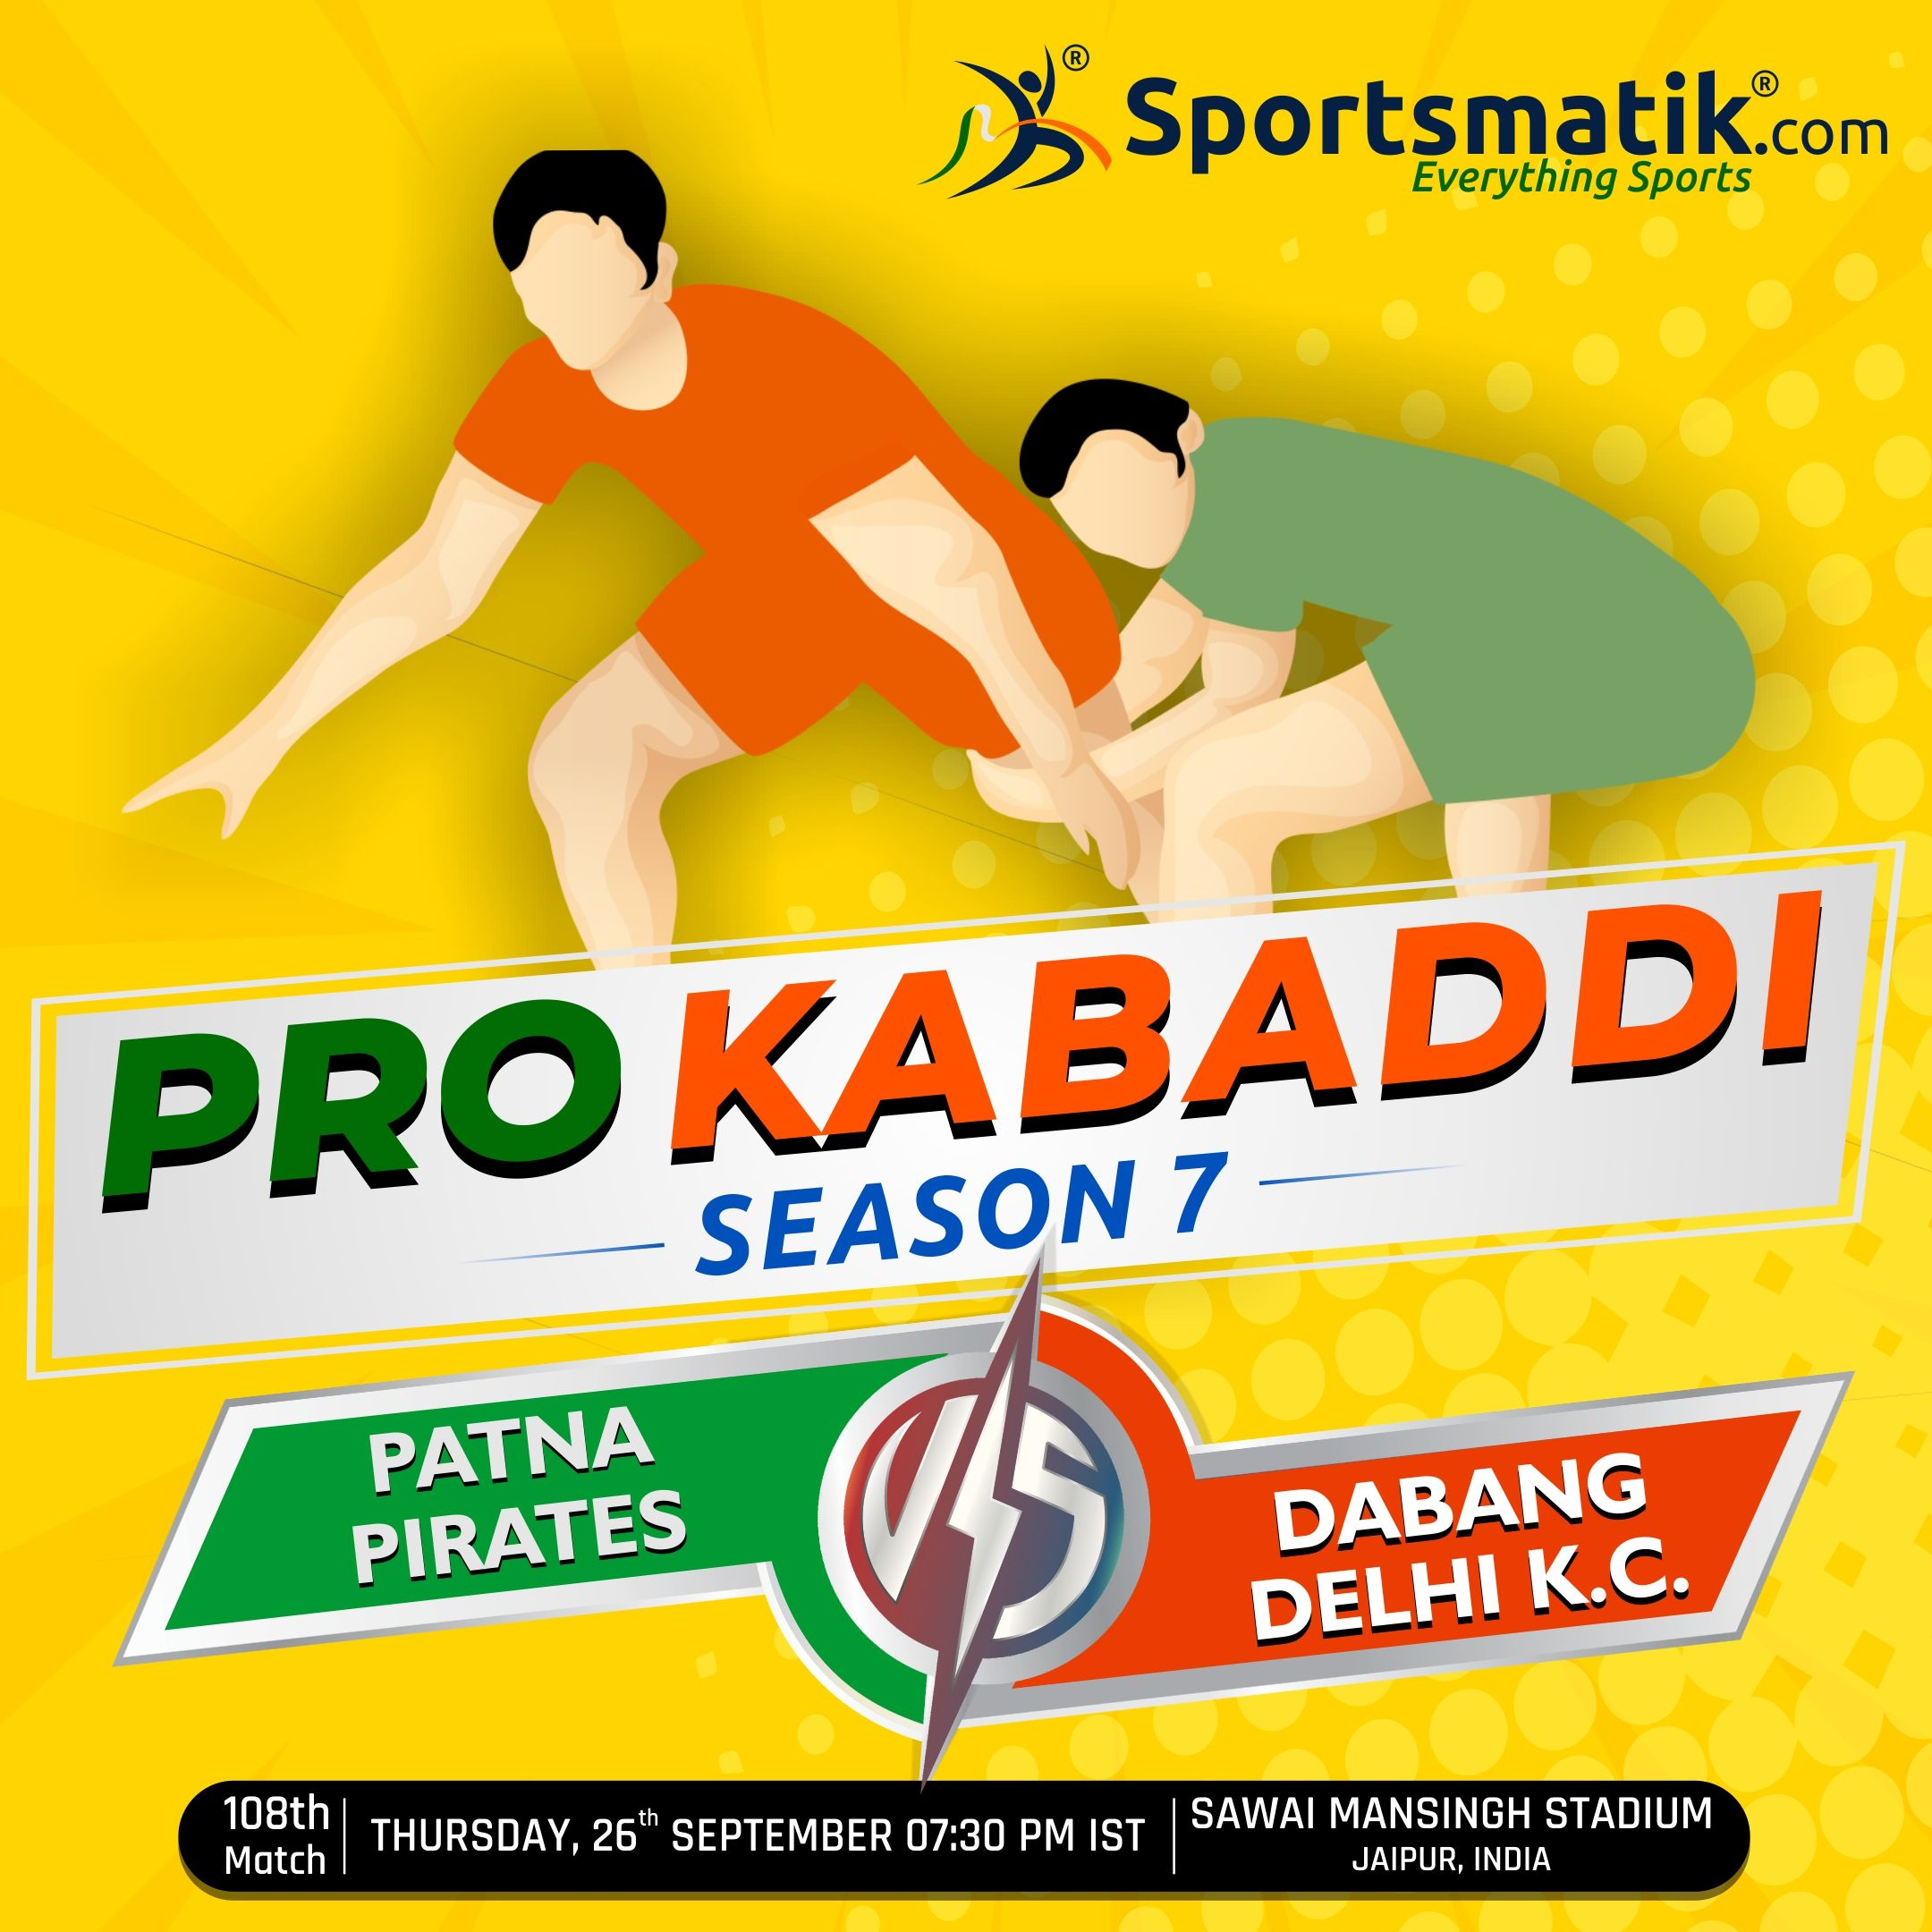 Pin By Sportsmatik On Sports Events Pro Kabaddi League List Of All Sports Sports